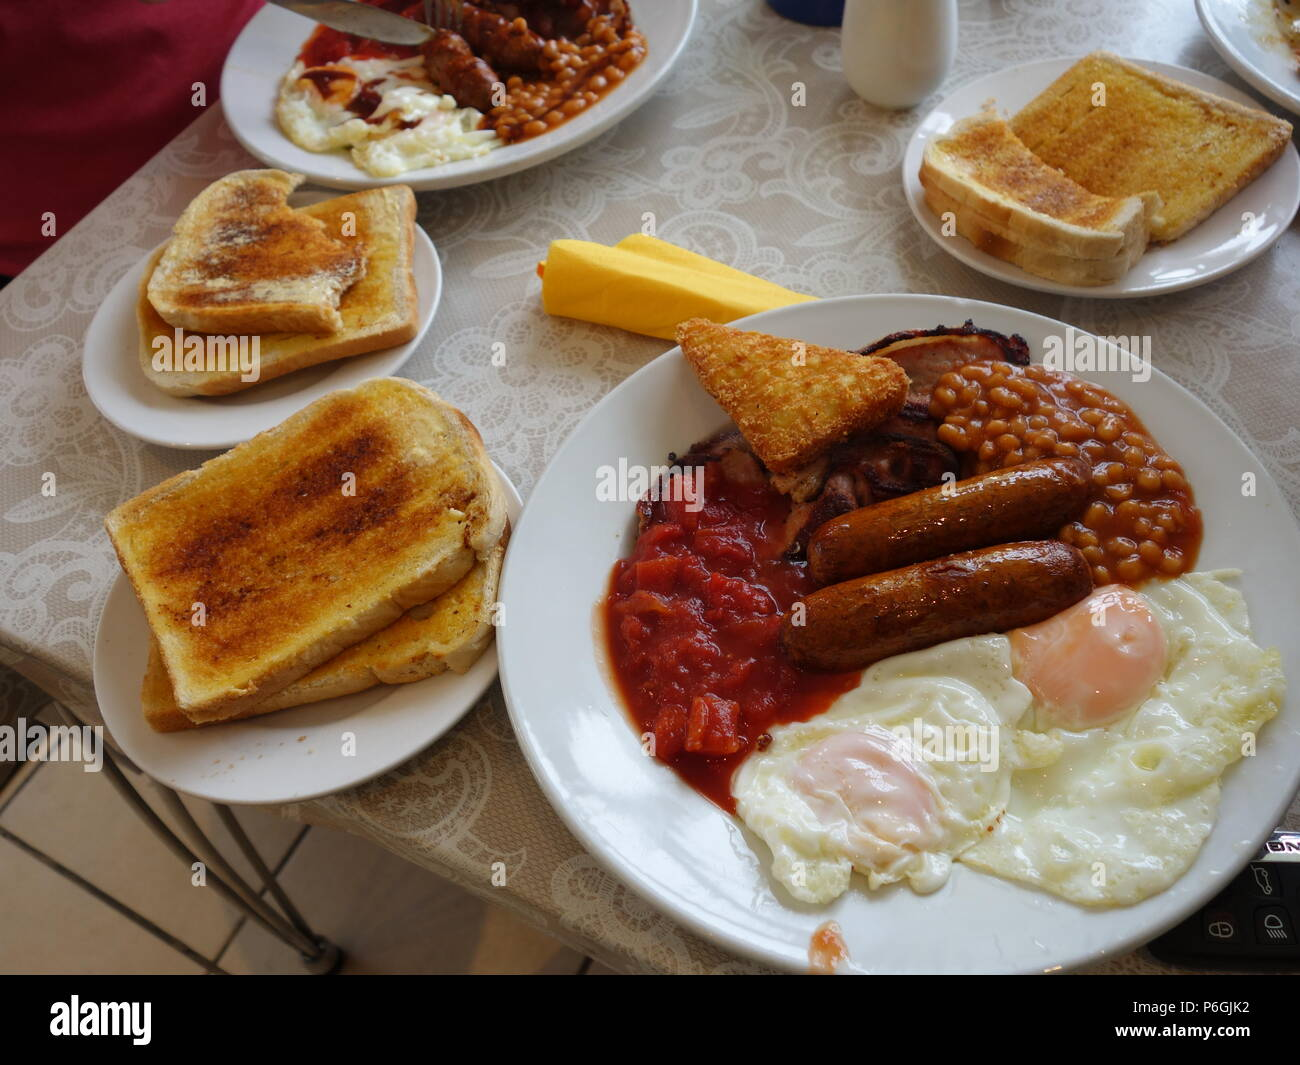 A Big full english greasy breakfast in a cafe in Yorkshire - Stock Image